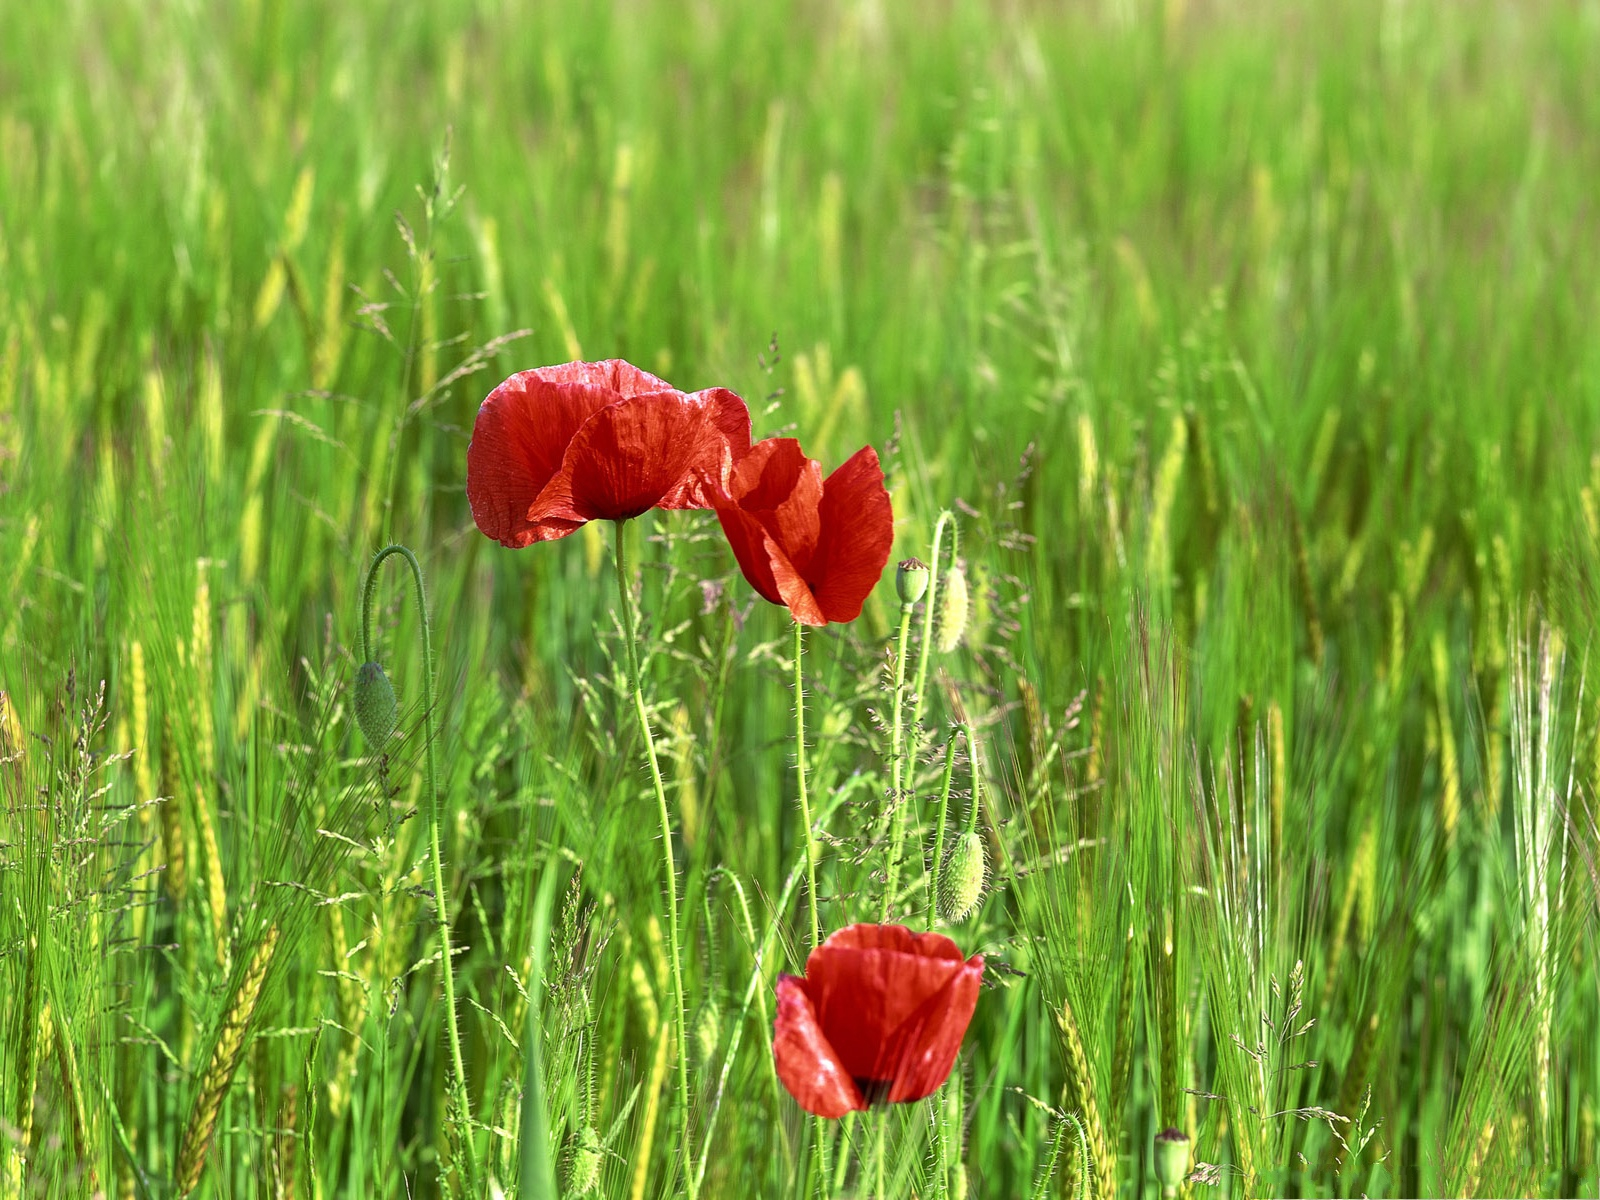 click to free download the wallpaper--Wild Poppy Flowers, Red Flower in Bloom, Green Grass Around, Gain Utmost Attention 1600X1200 free wallpaper download